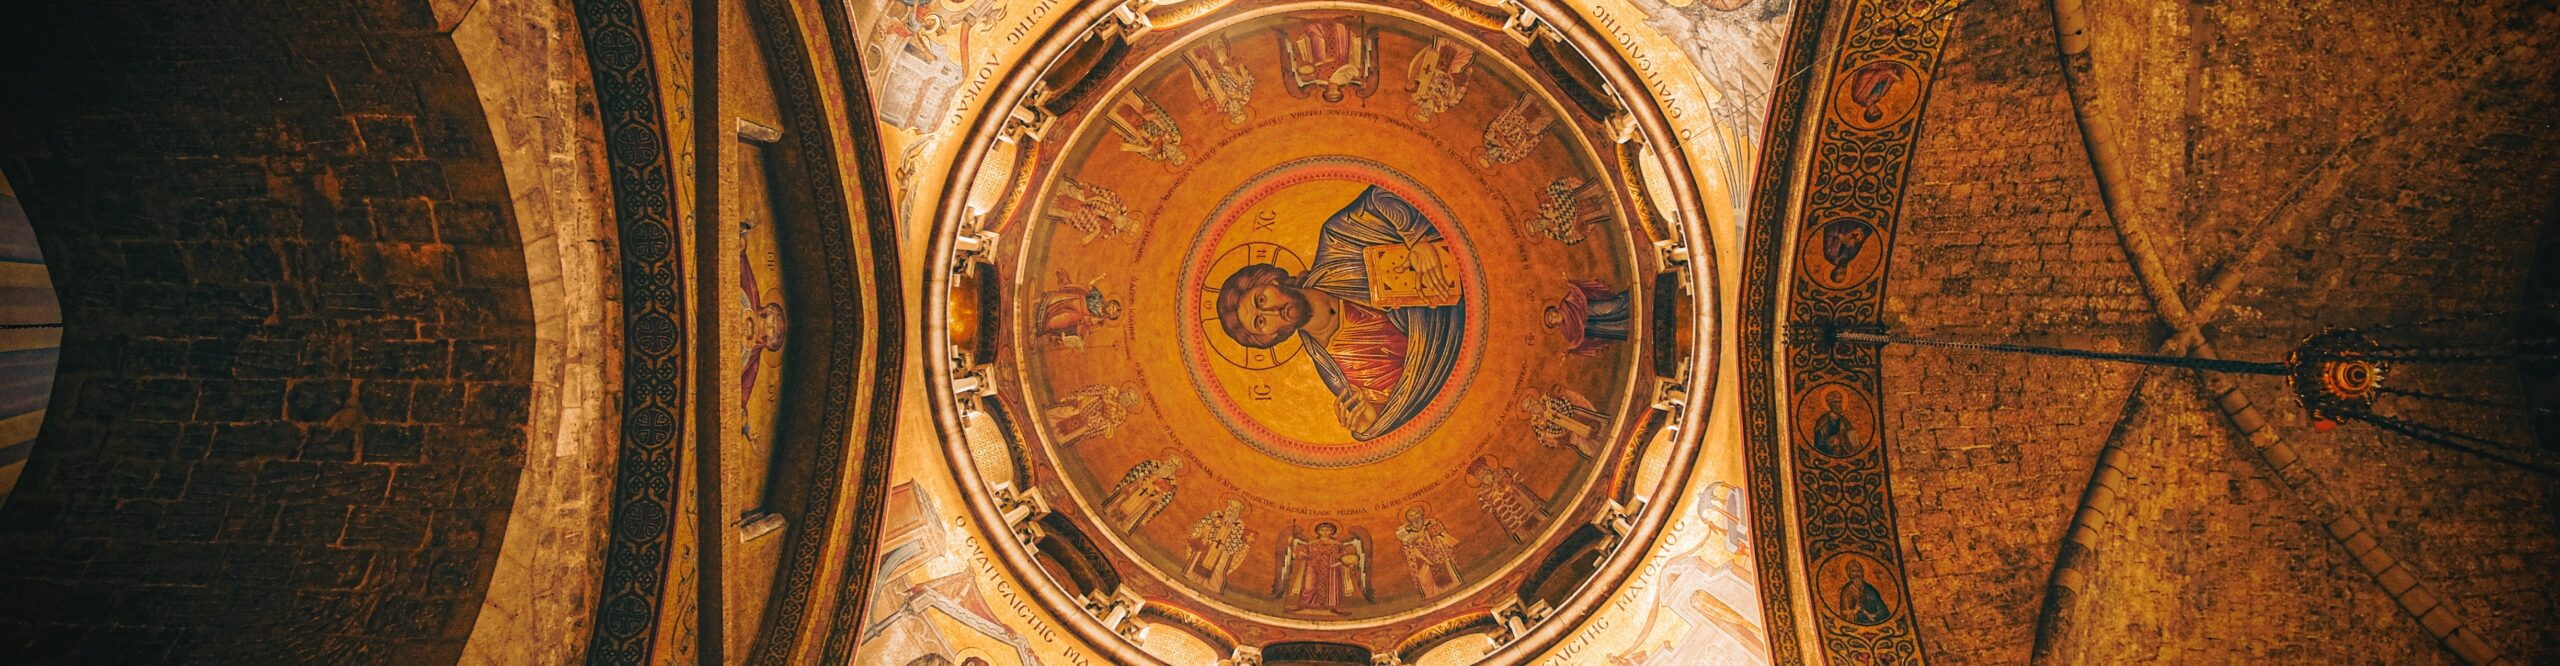 Many of the first Catholic Saints of the Holy Land are shown at the Holy Sepulchre - the Apostles